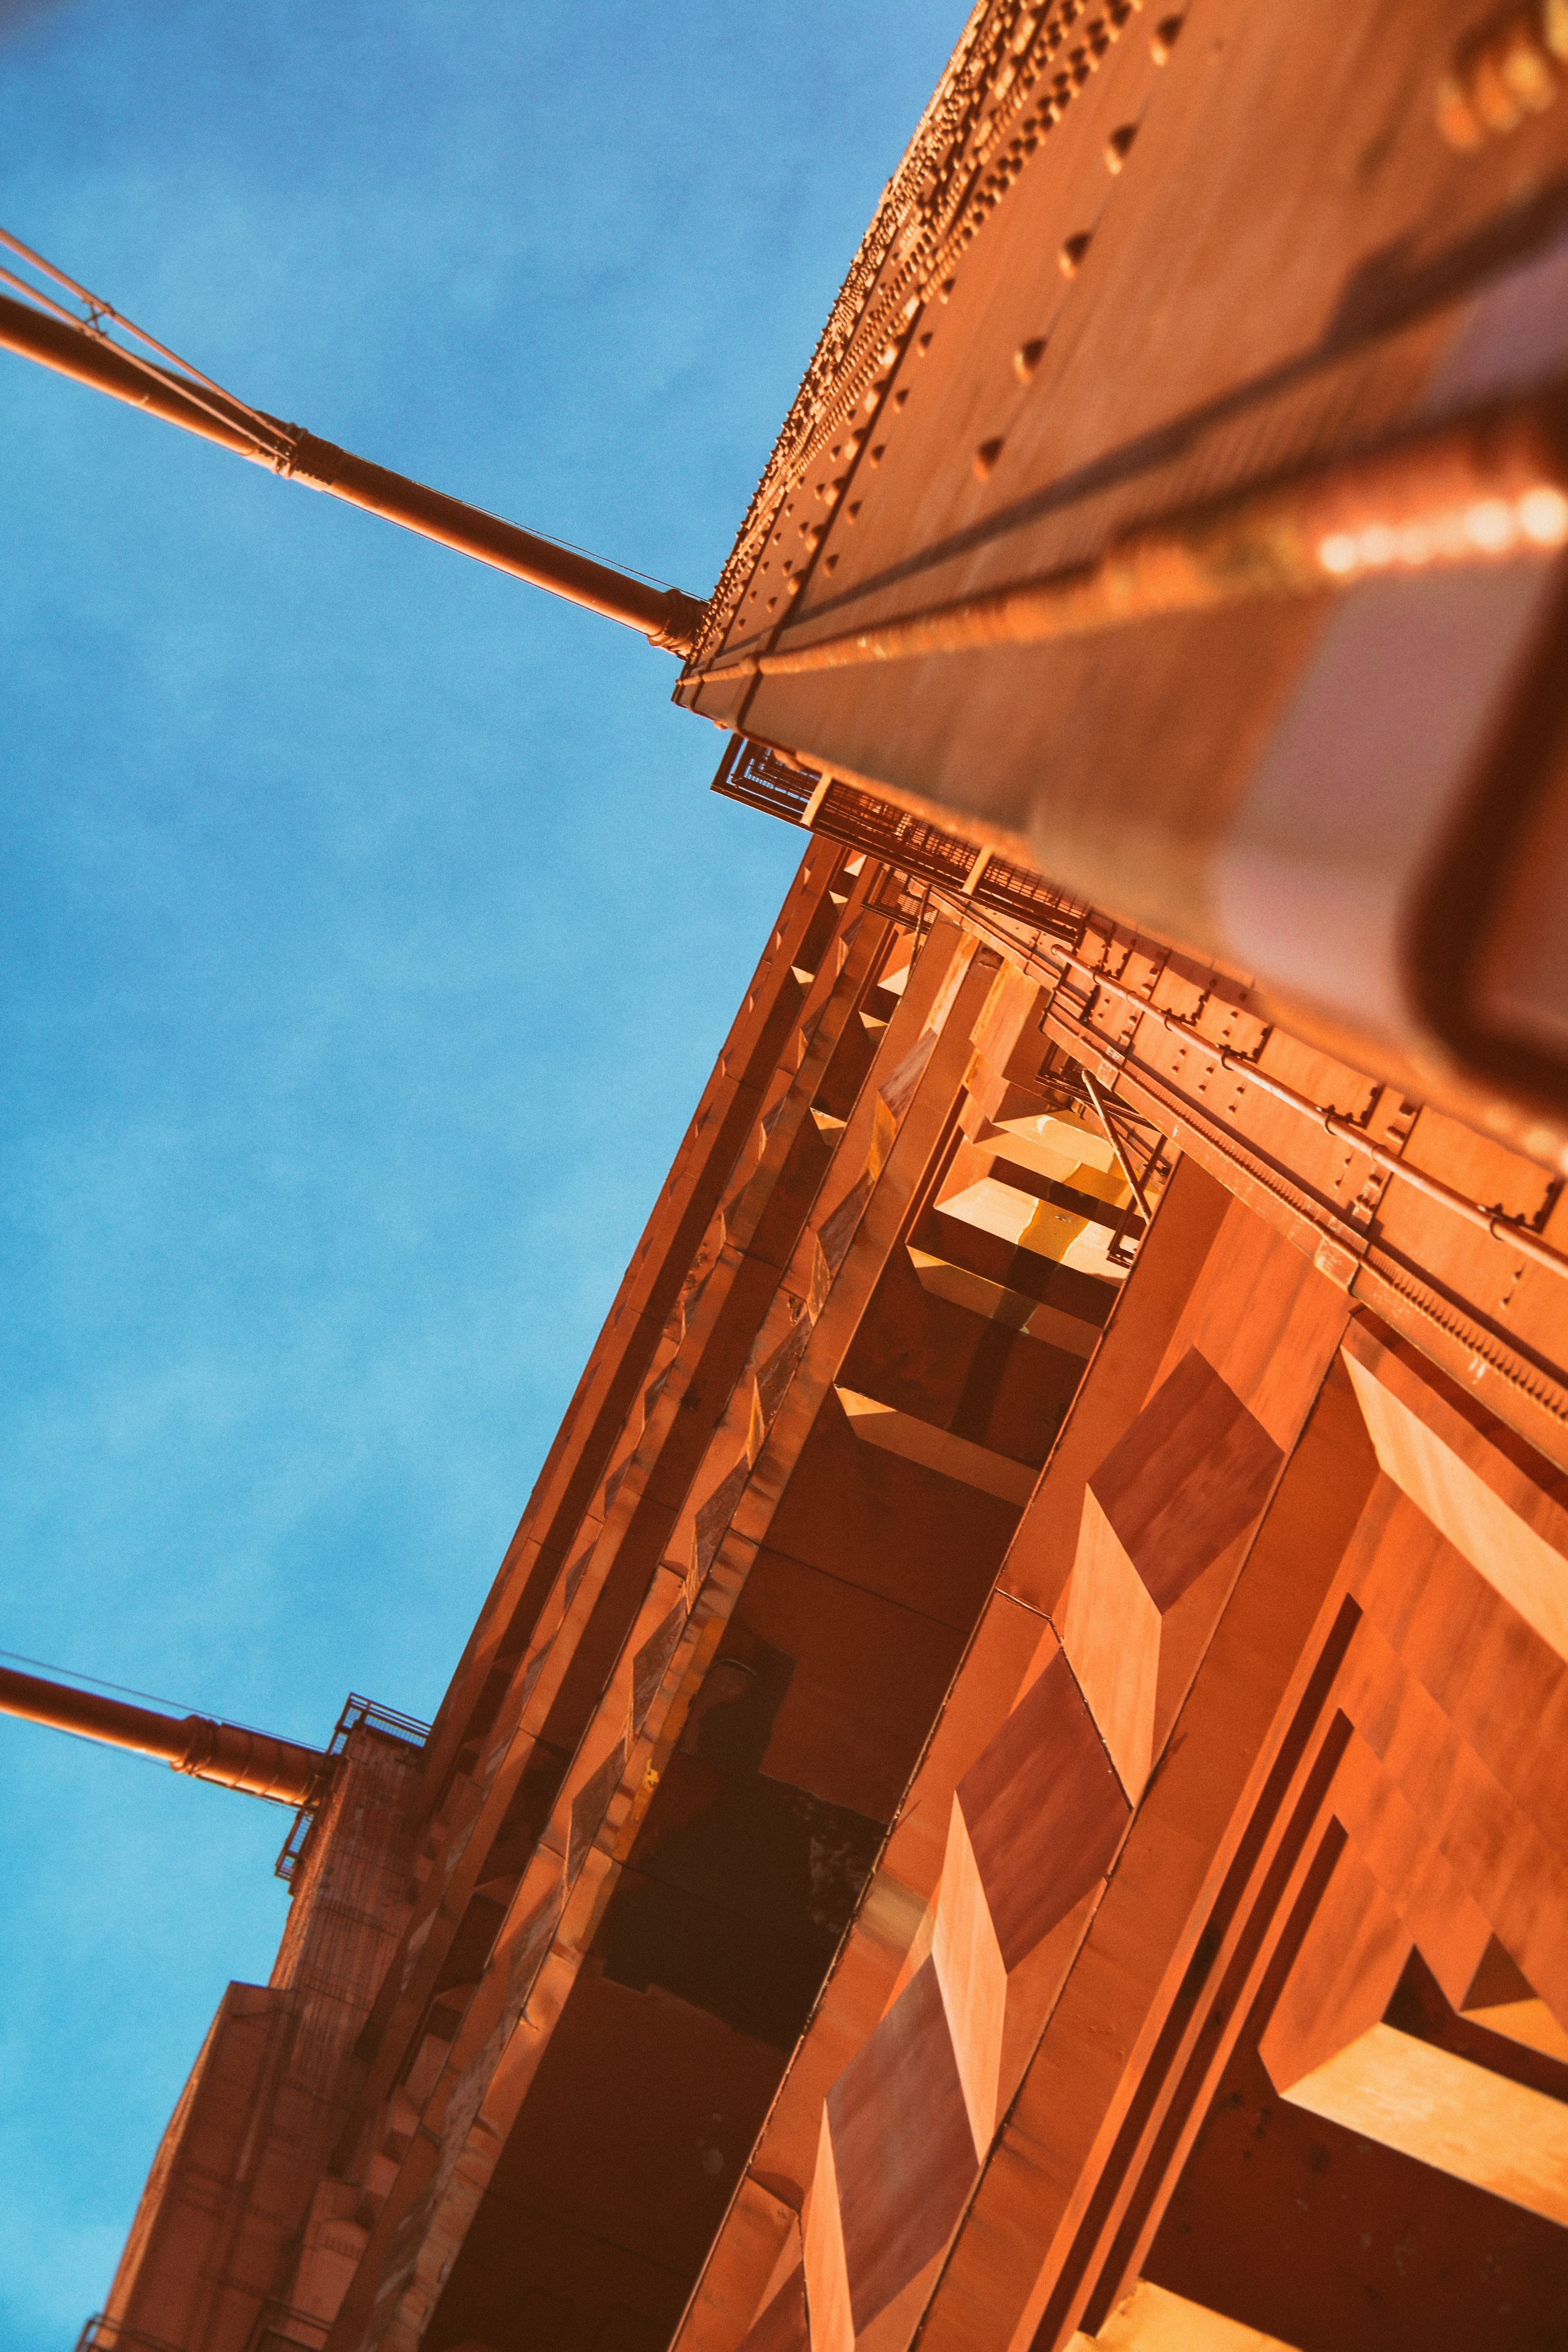 low angle photography of wooden building under blue sky